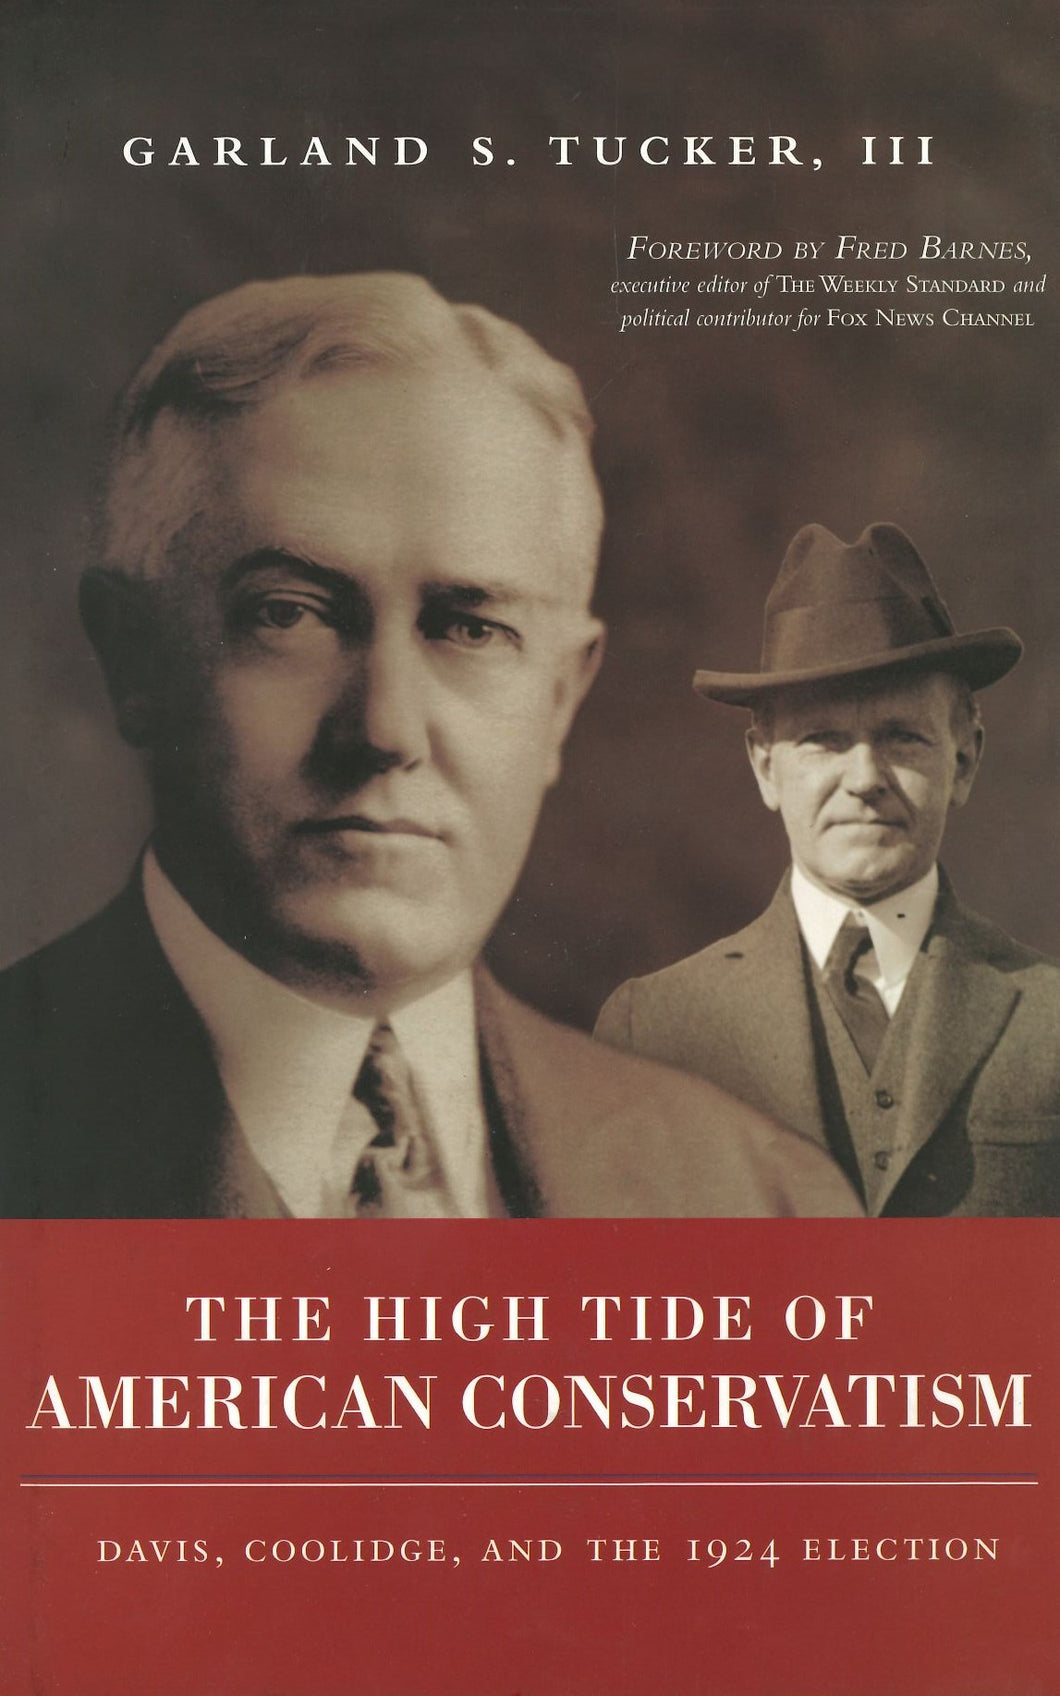 The High Tide of American Conservatism by Garland S. Tucker, III